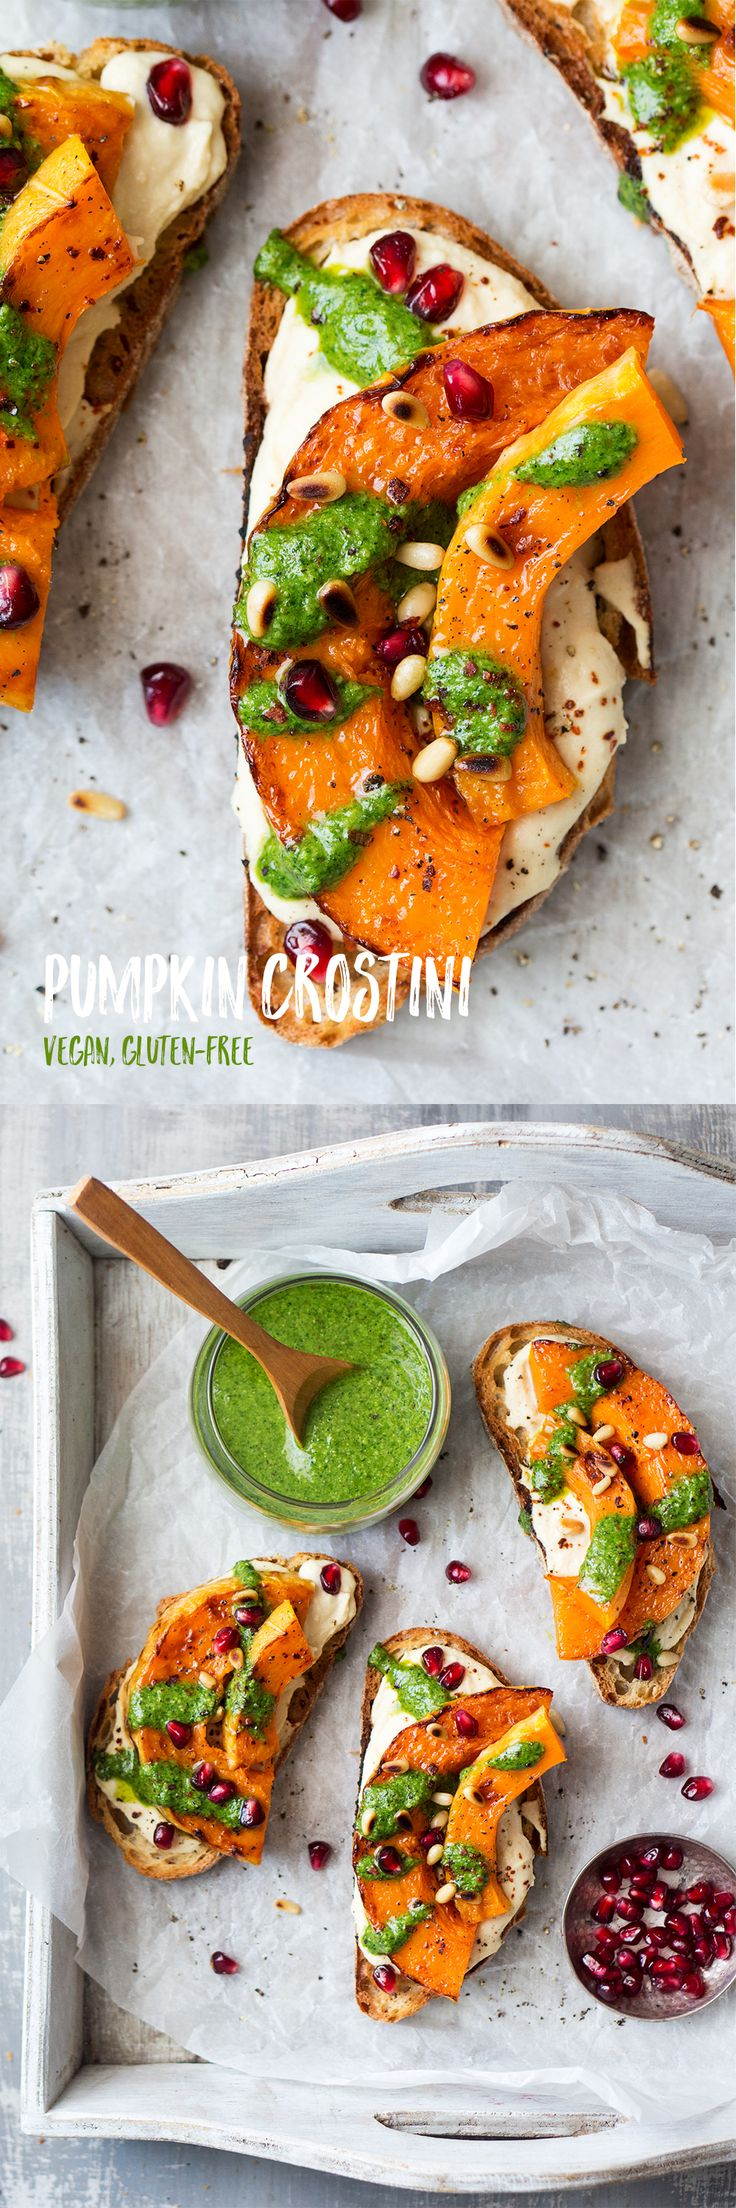 Pumpkin Crostini - Perfect Appetizer for Fall